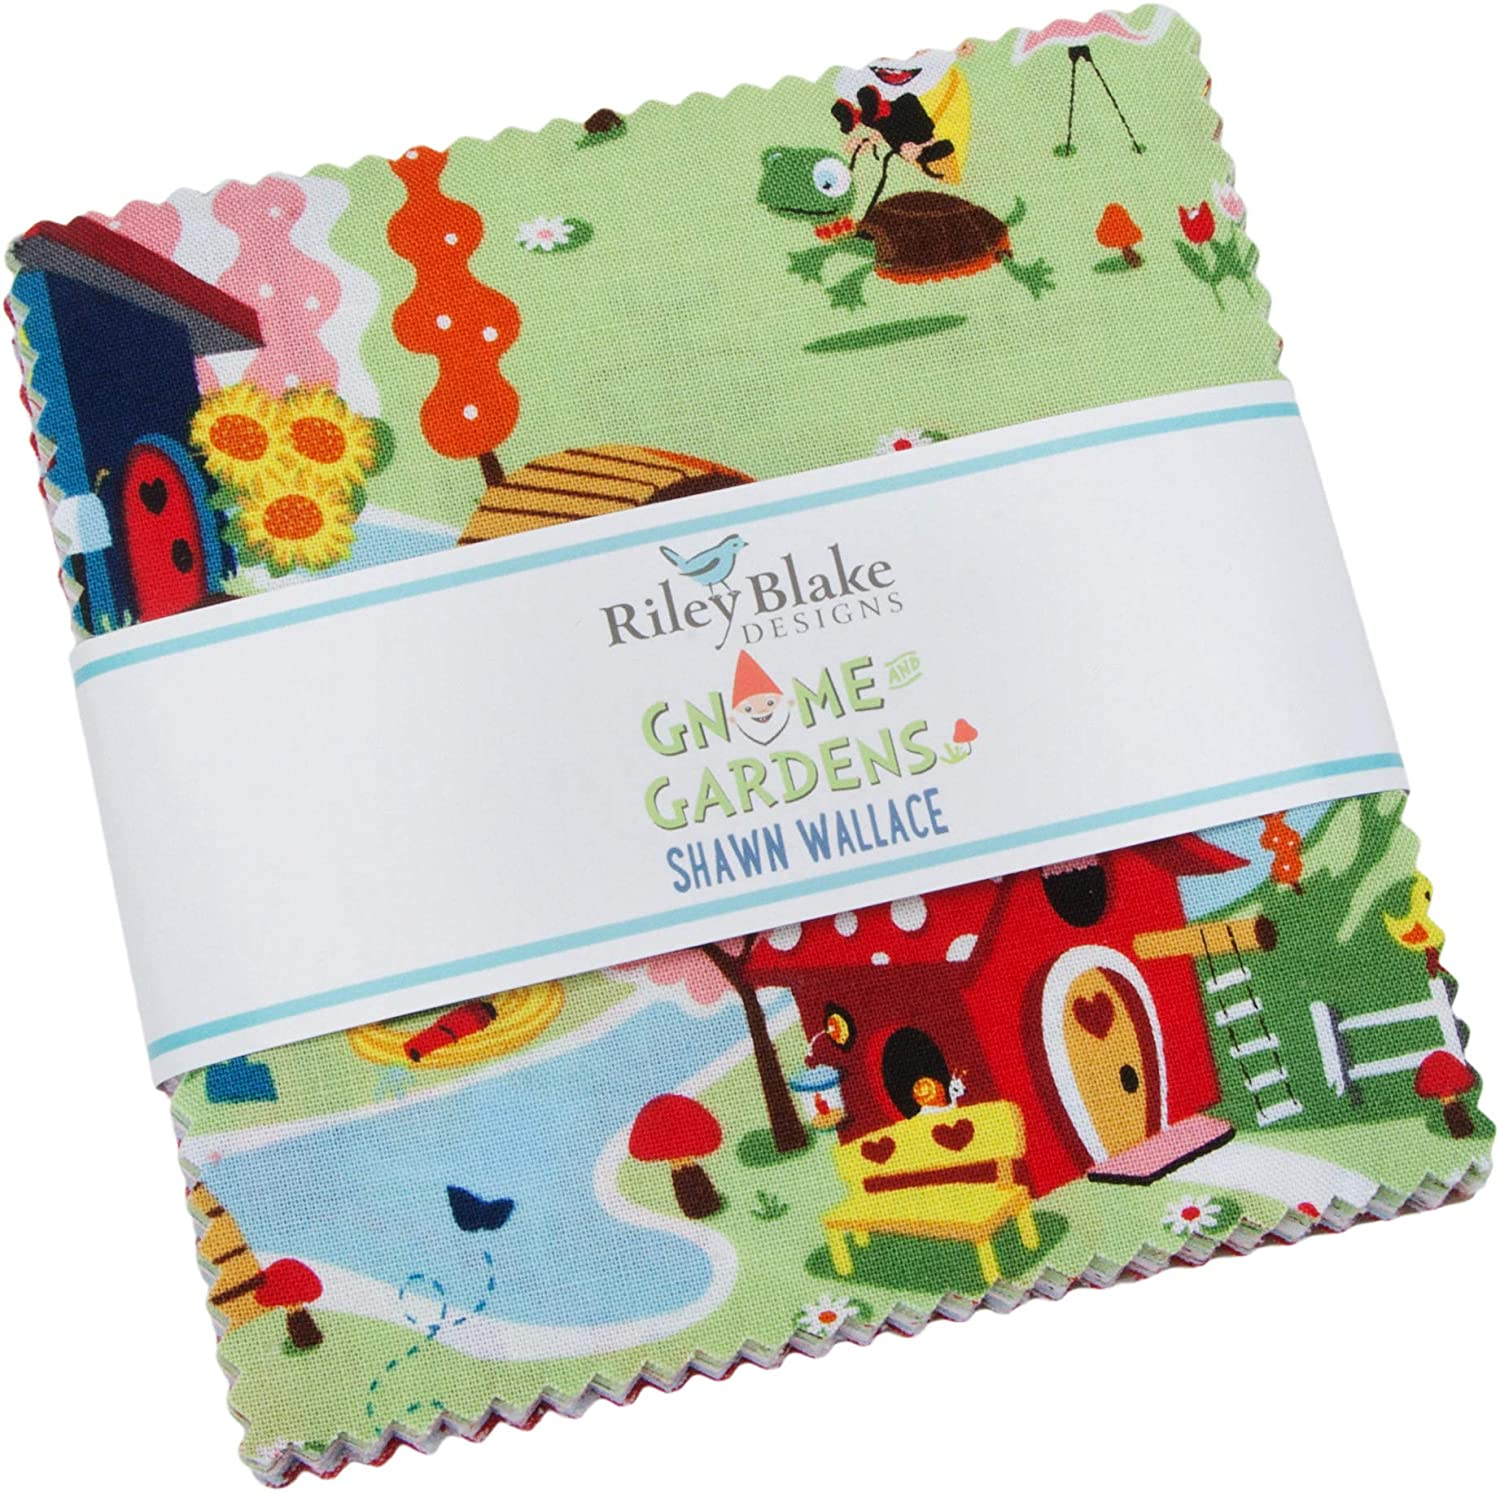 Shawn Wallace Gnome and Gardens 5 Stacker 42 5-inch Squares Charm Pack Riley Blake 5-7890-42